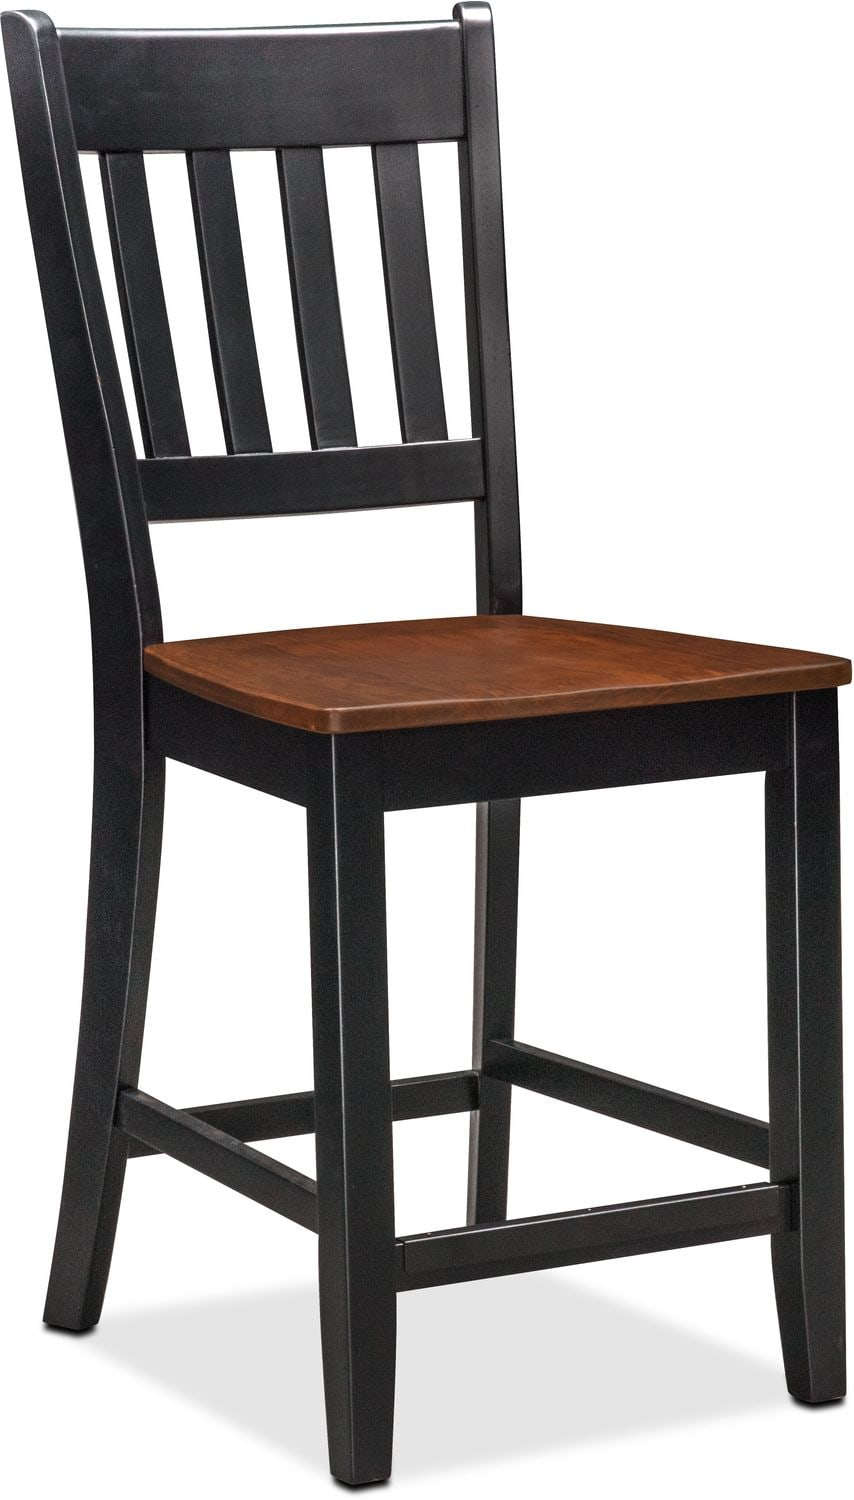 Dining Room Furniture - Nantucket Counter-Height Slat-Back Chair